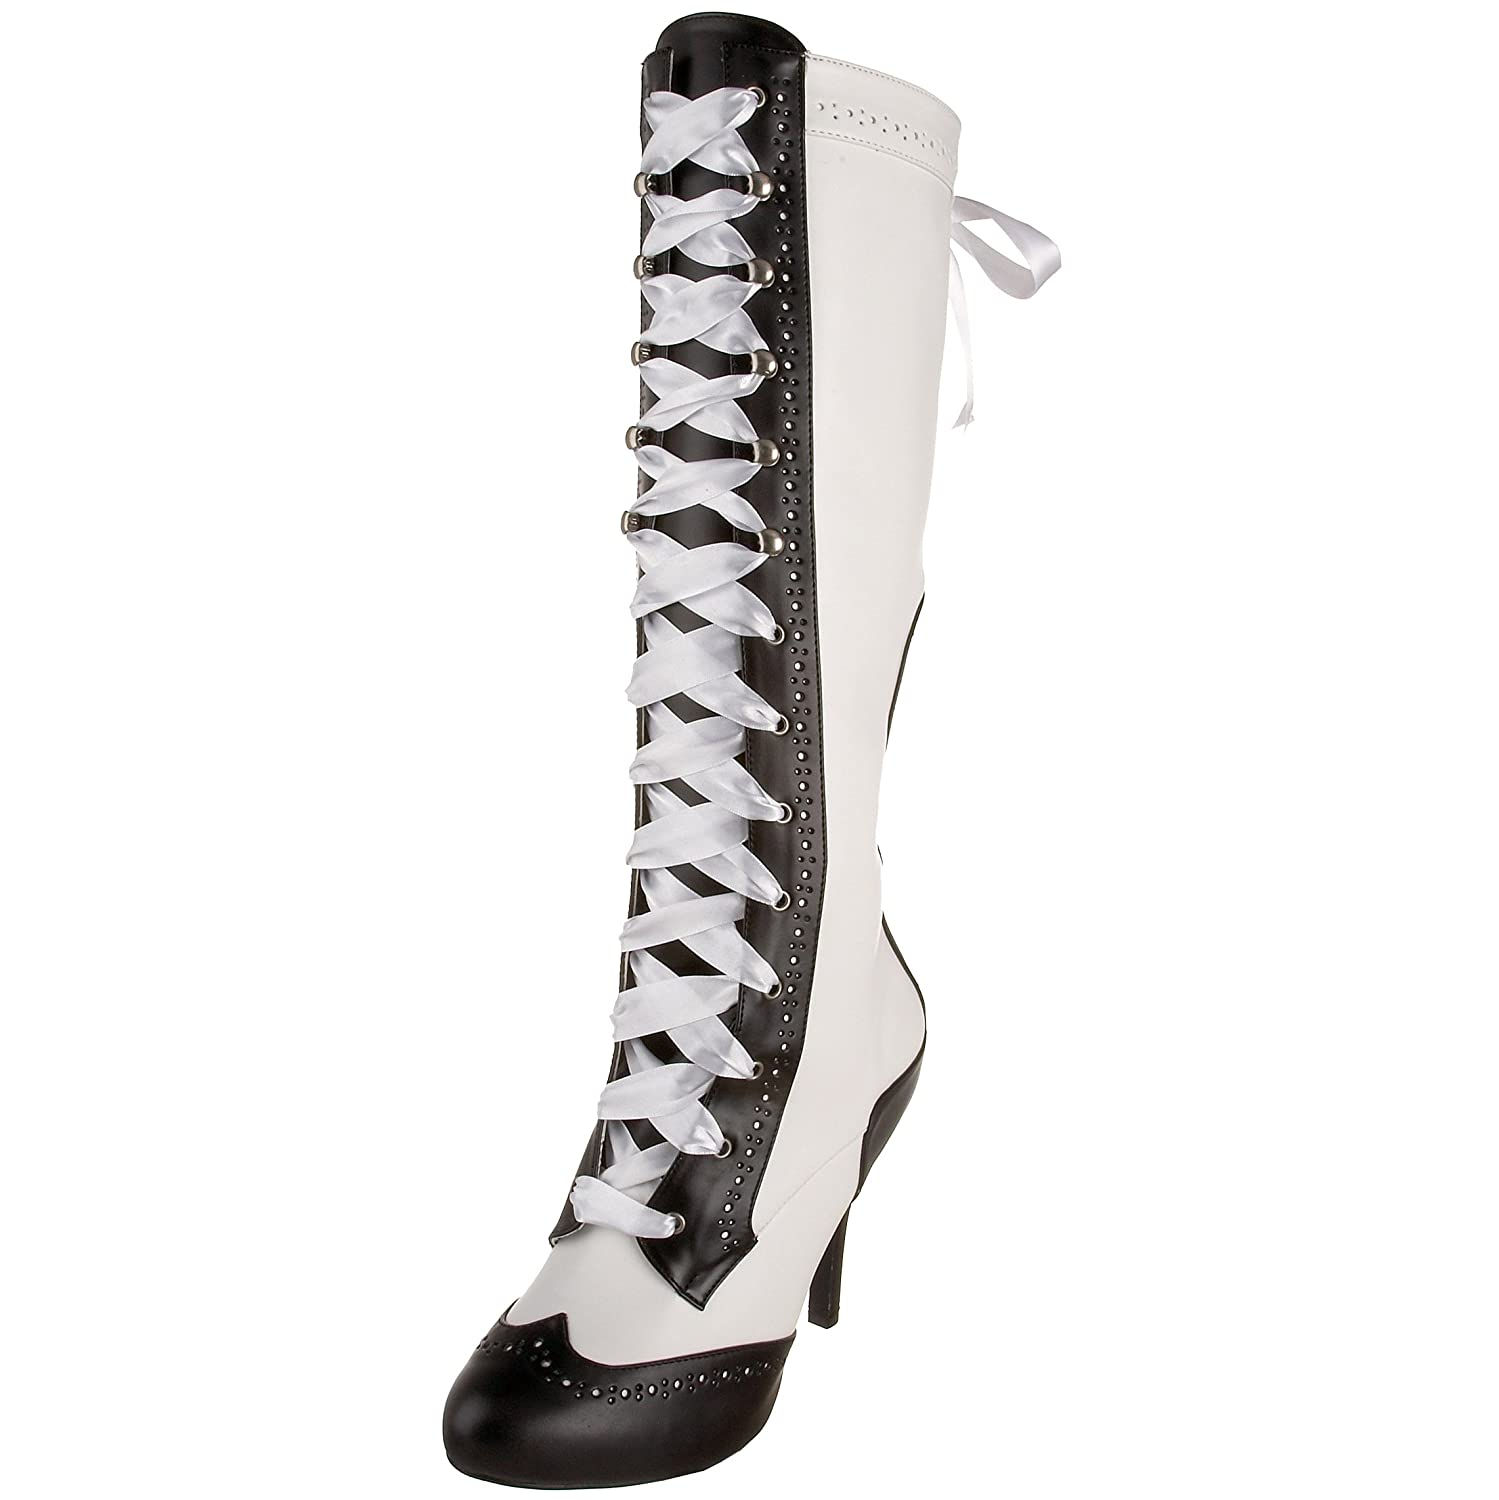 Pleaser Bordello by Women's Tempt-126 Lace-Up Boot B002LI9YEC 6 B(M) US|White/Black Synthetic